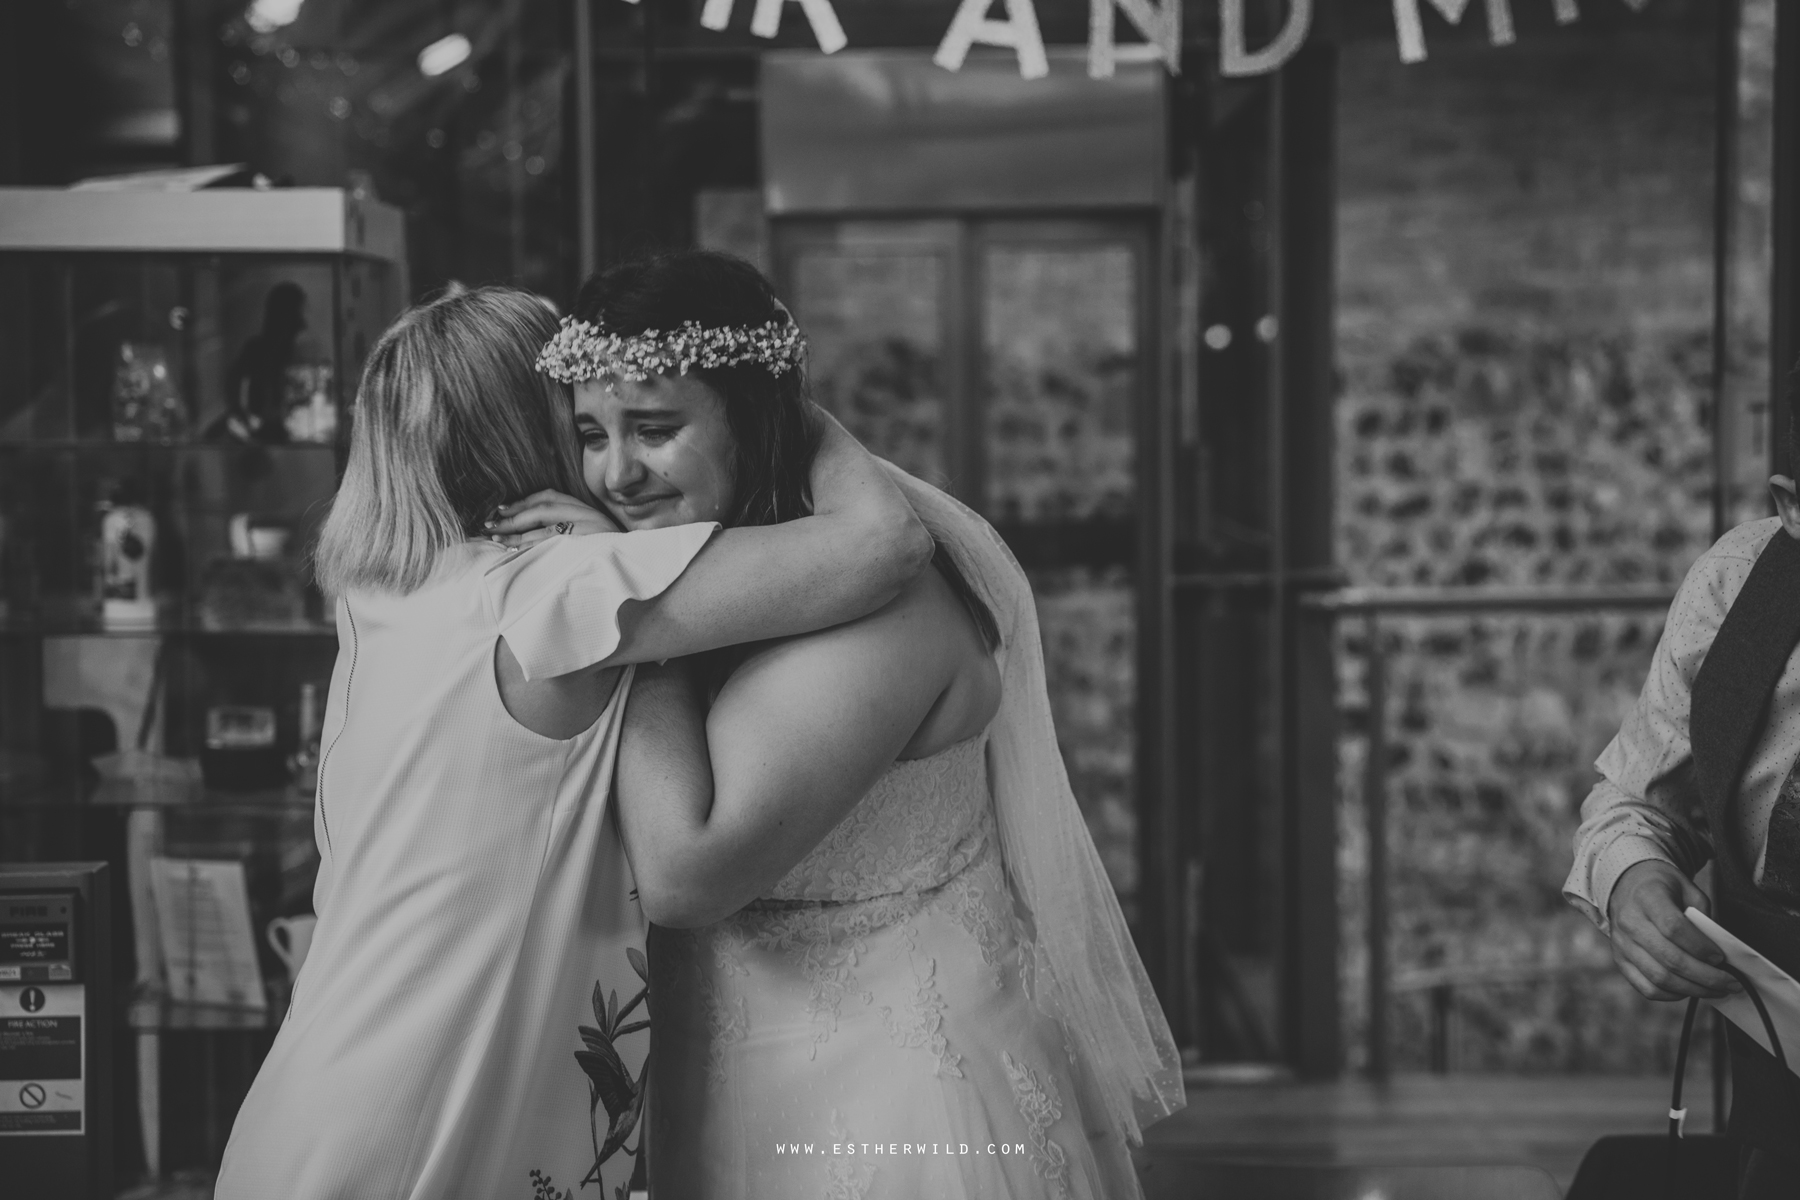 Norwich_Castle_Arcade_Grosvenor_Chip_Birdcage_Cathedral_Cloisters_Refectory_Wedding_Photography_Esther_Wild_Photographer_Norfolk_Kings_Lynn_3R8A2561-2.jpg